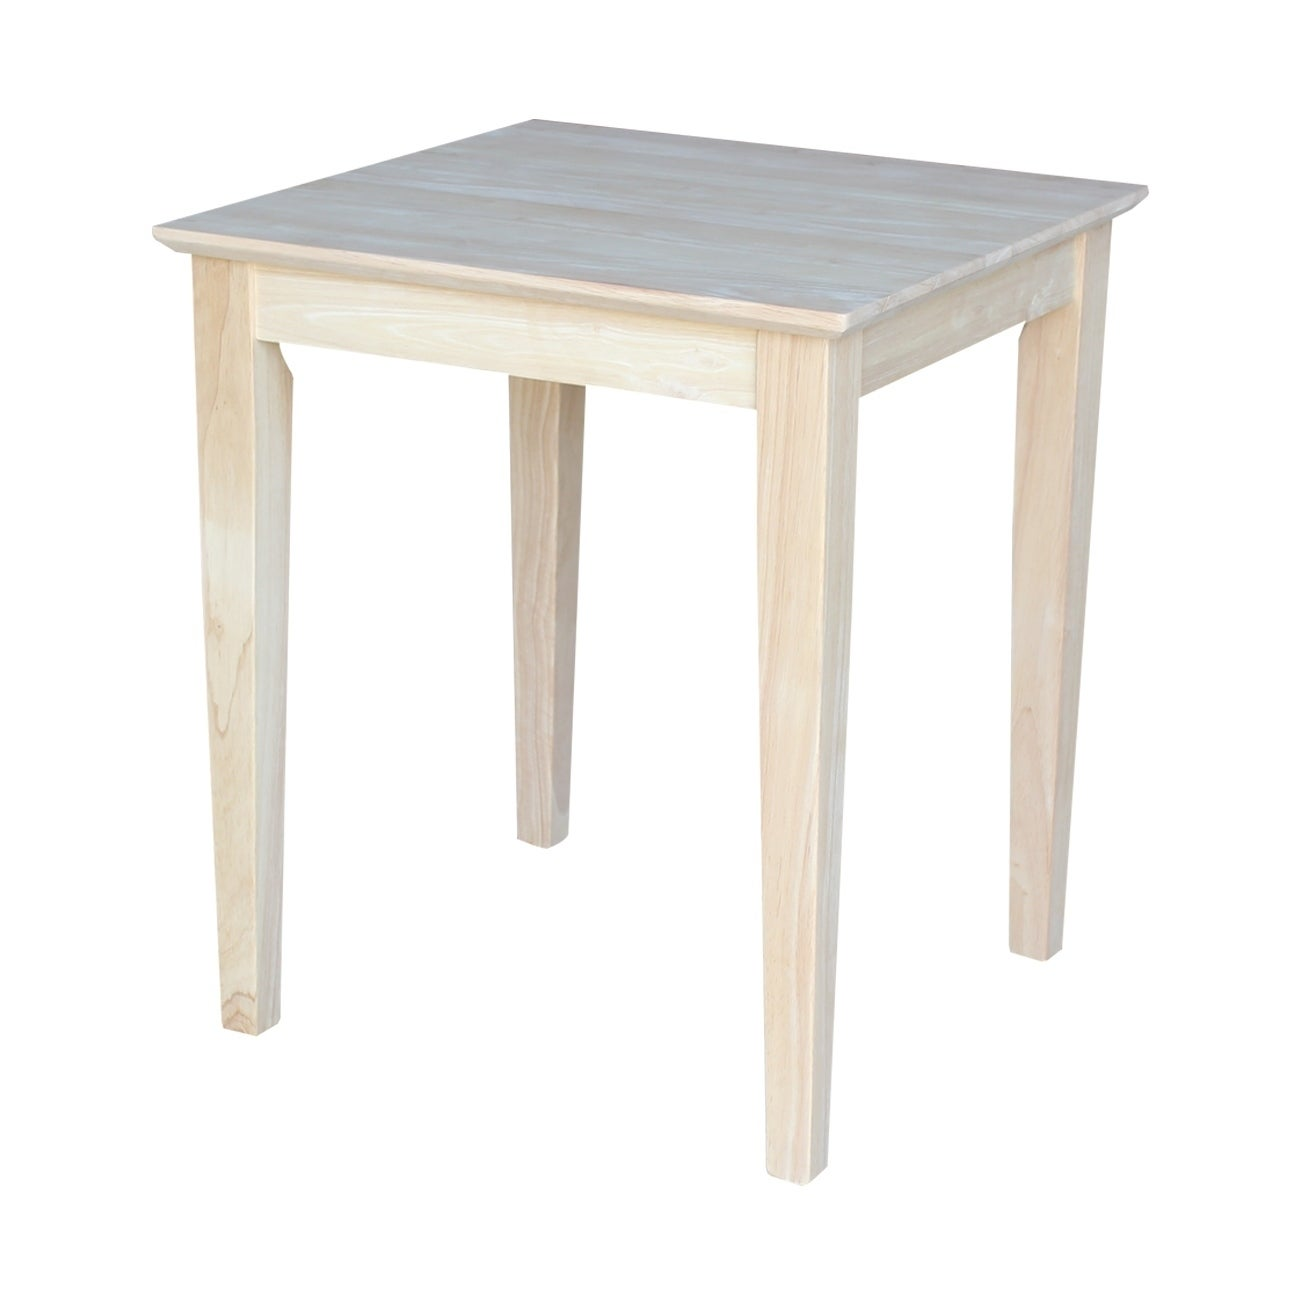 tall end tables. Shop Unfinished Solid Parawood Shaker Tall End Table - Free Shipping Today Overstock.com 9362944 Tables